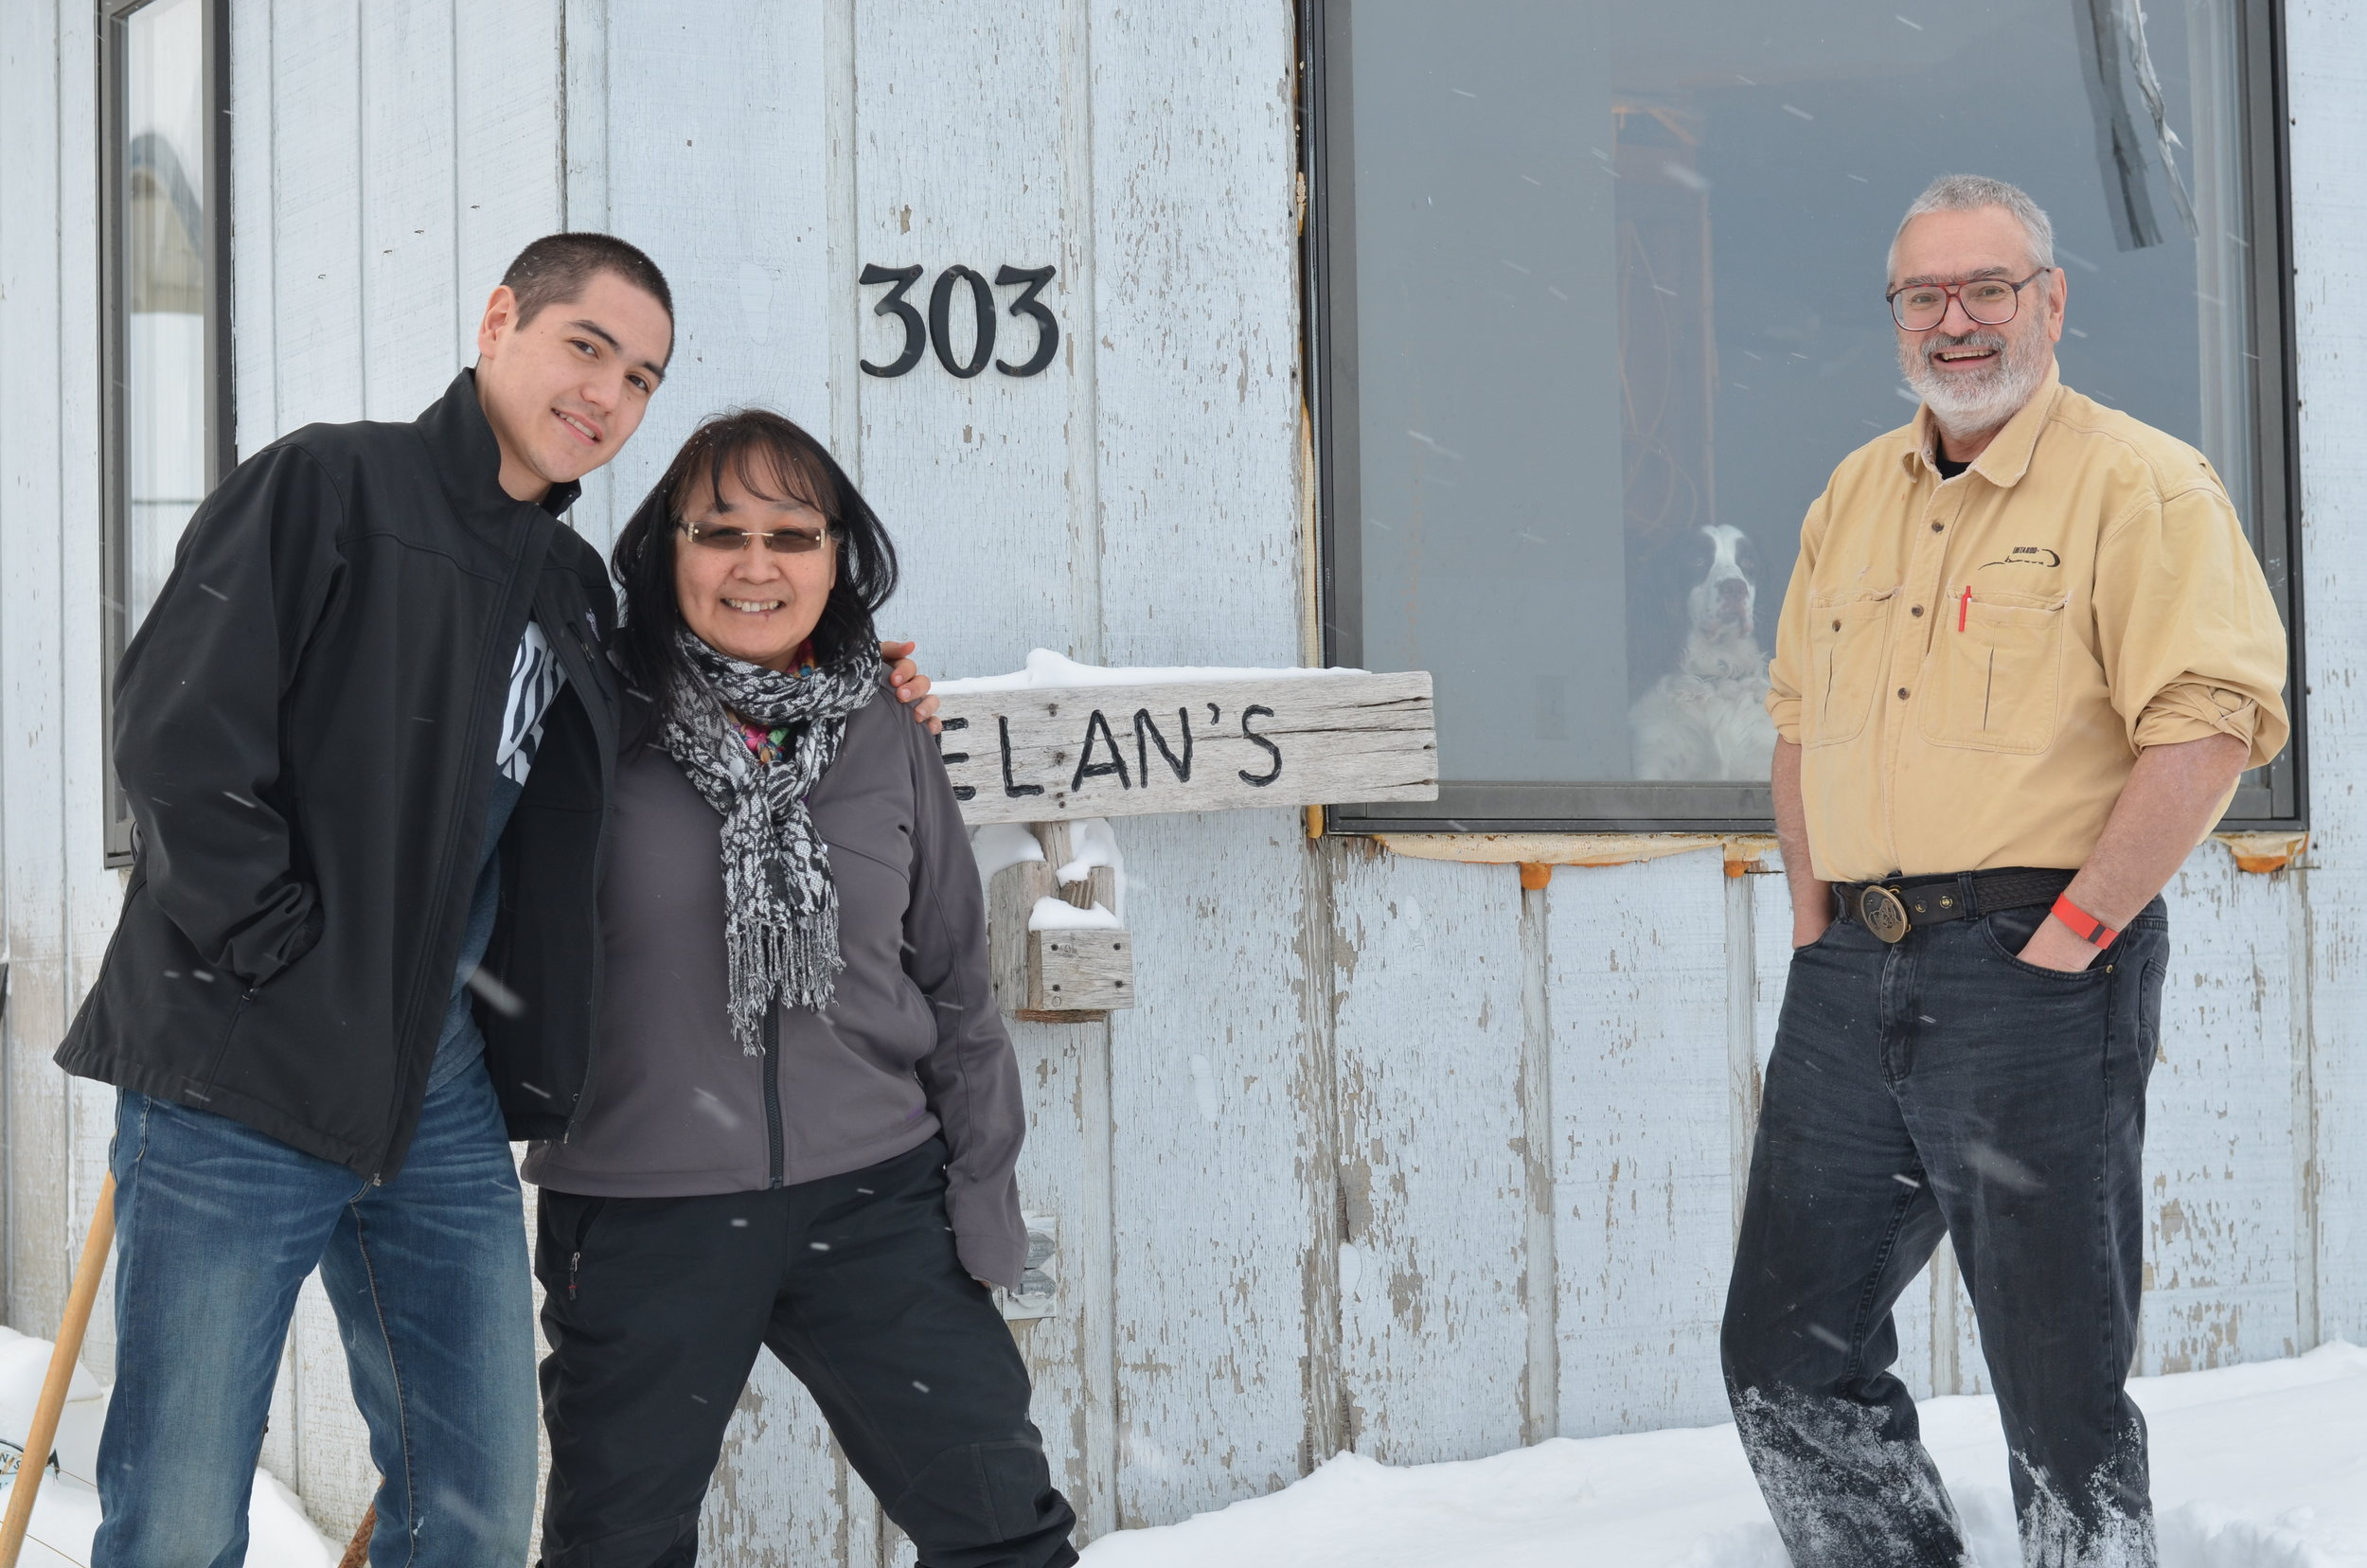 Koezuna-Irelan with son Jens and husband Hank, outside their home.